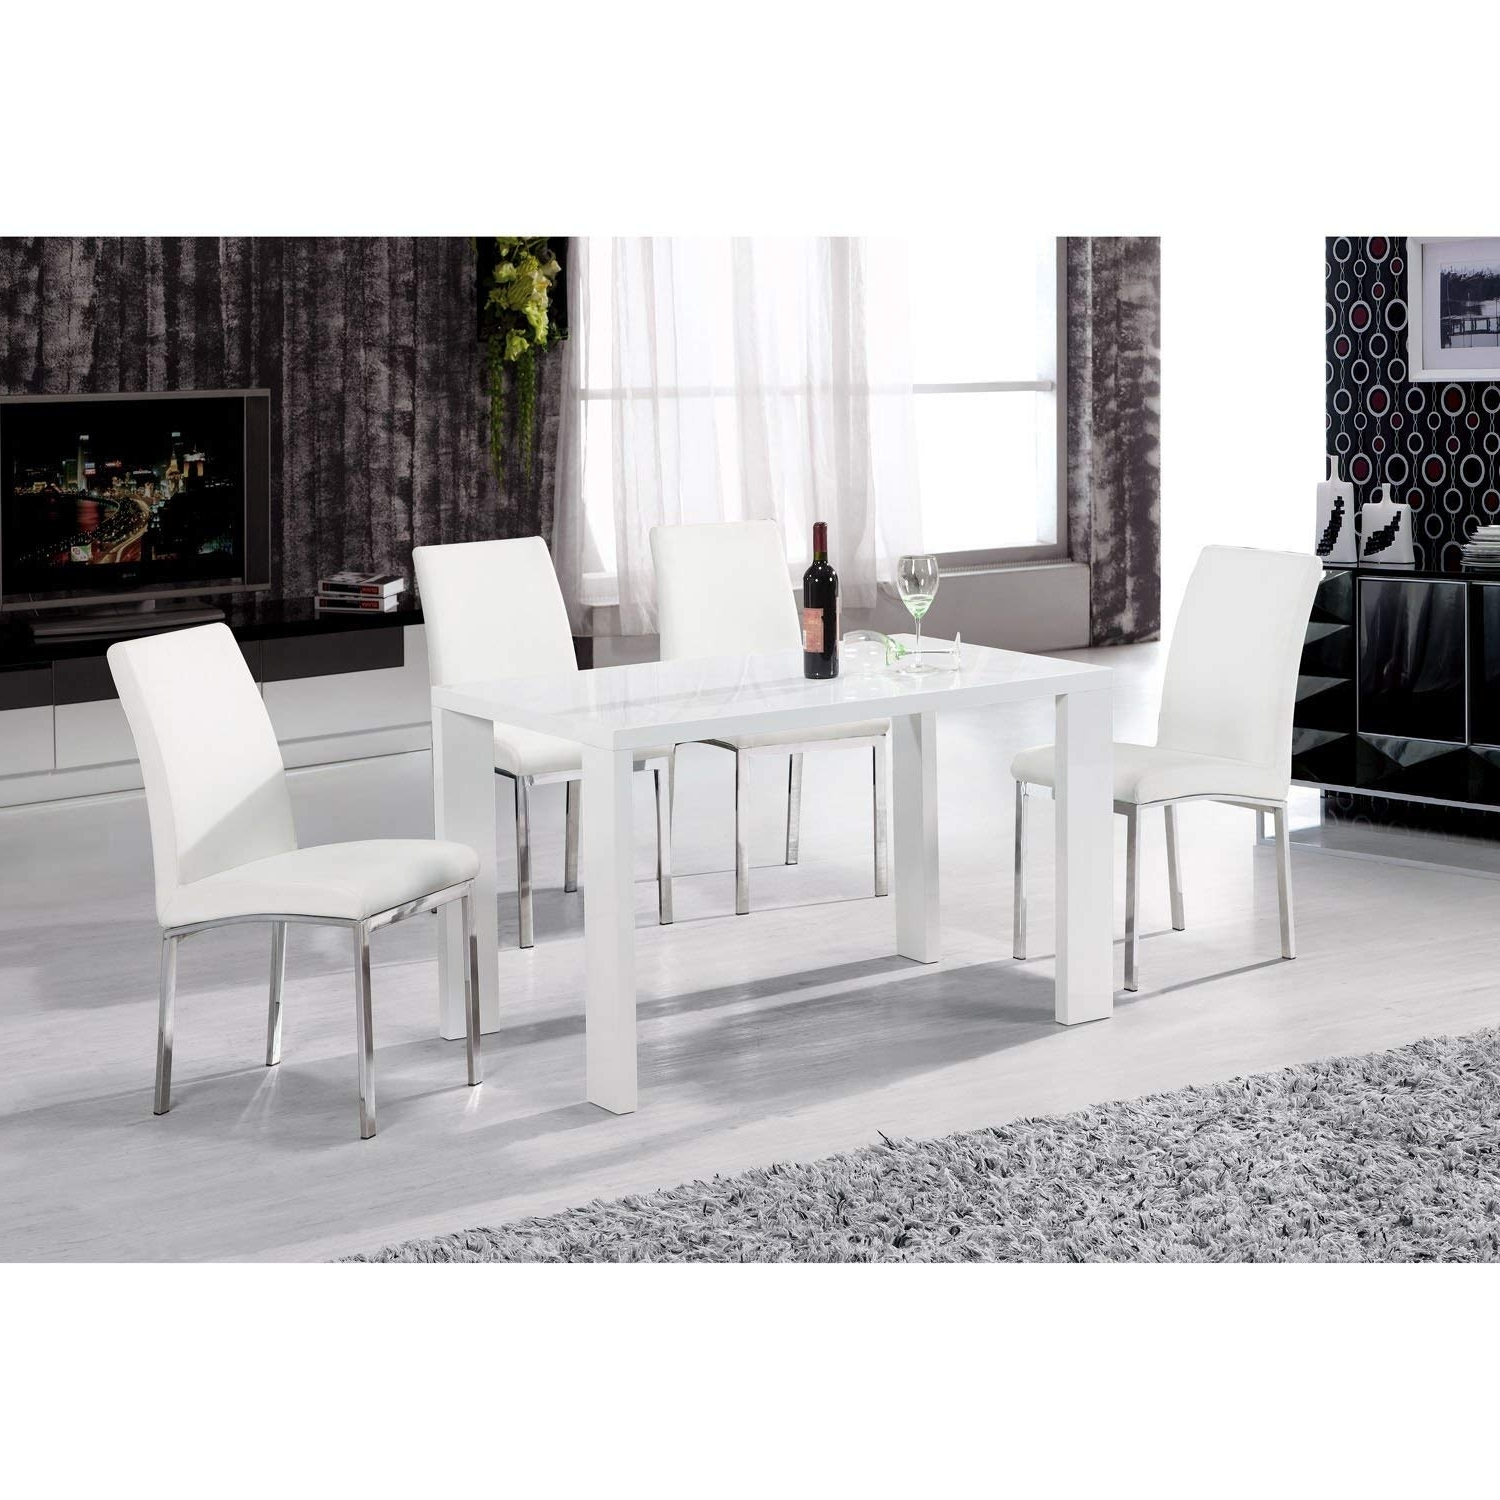 High Gloss Dining Tables With Most Current Heartlands Peru White High Gloss 130Cm Dining Table In Wood (View 18 of 25)